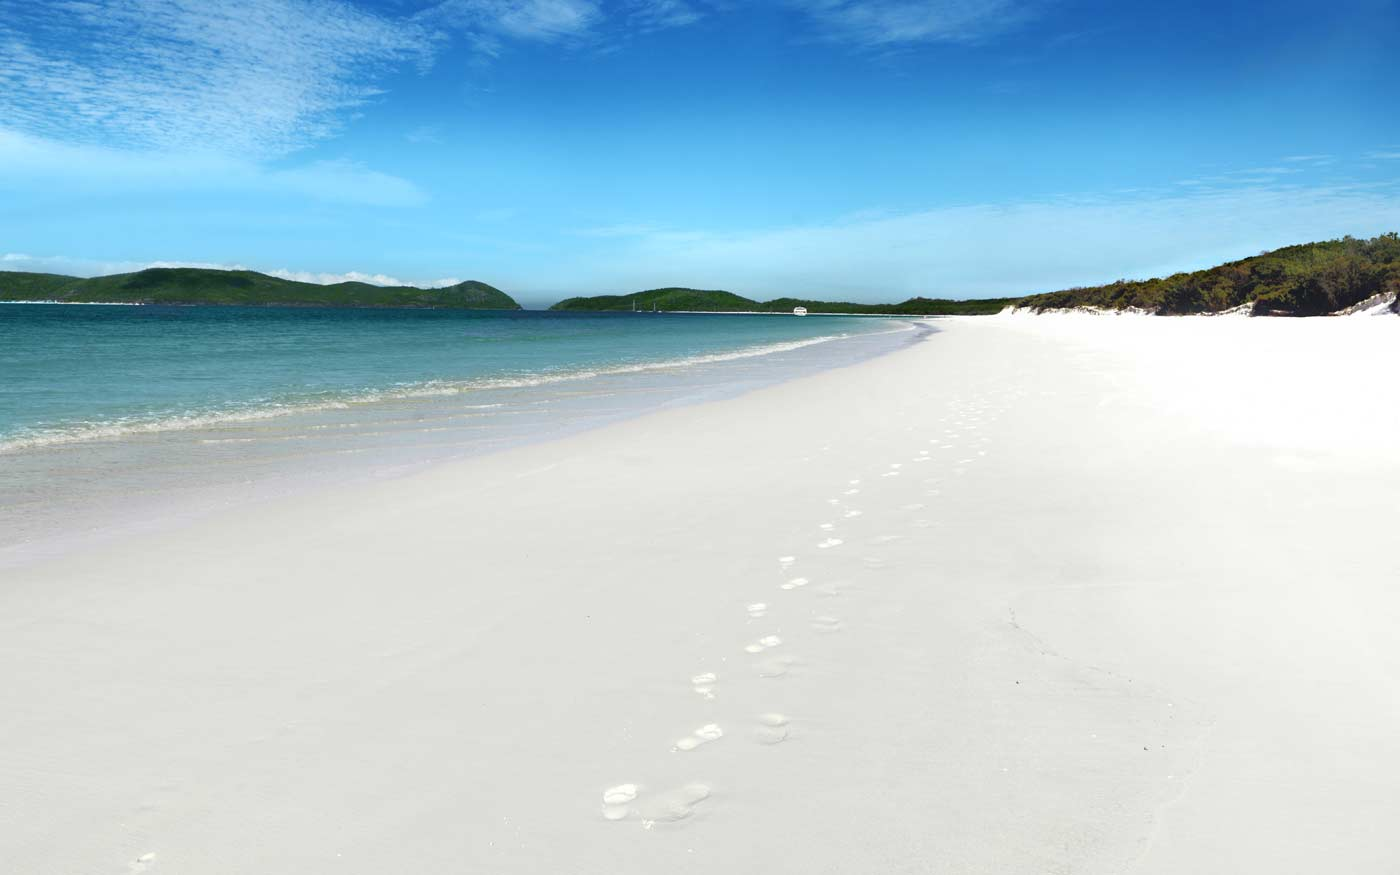 Whitehaven Beach, Whitsunday Island, Whitsunday Islands